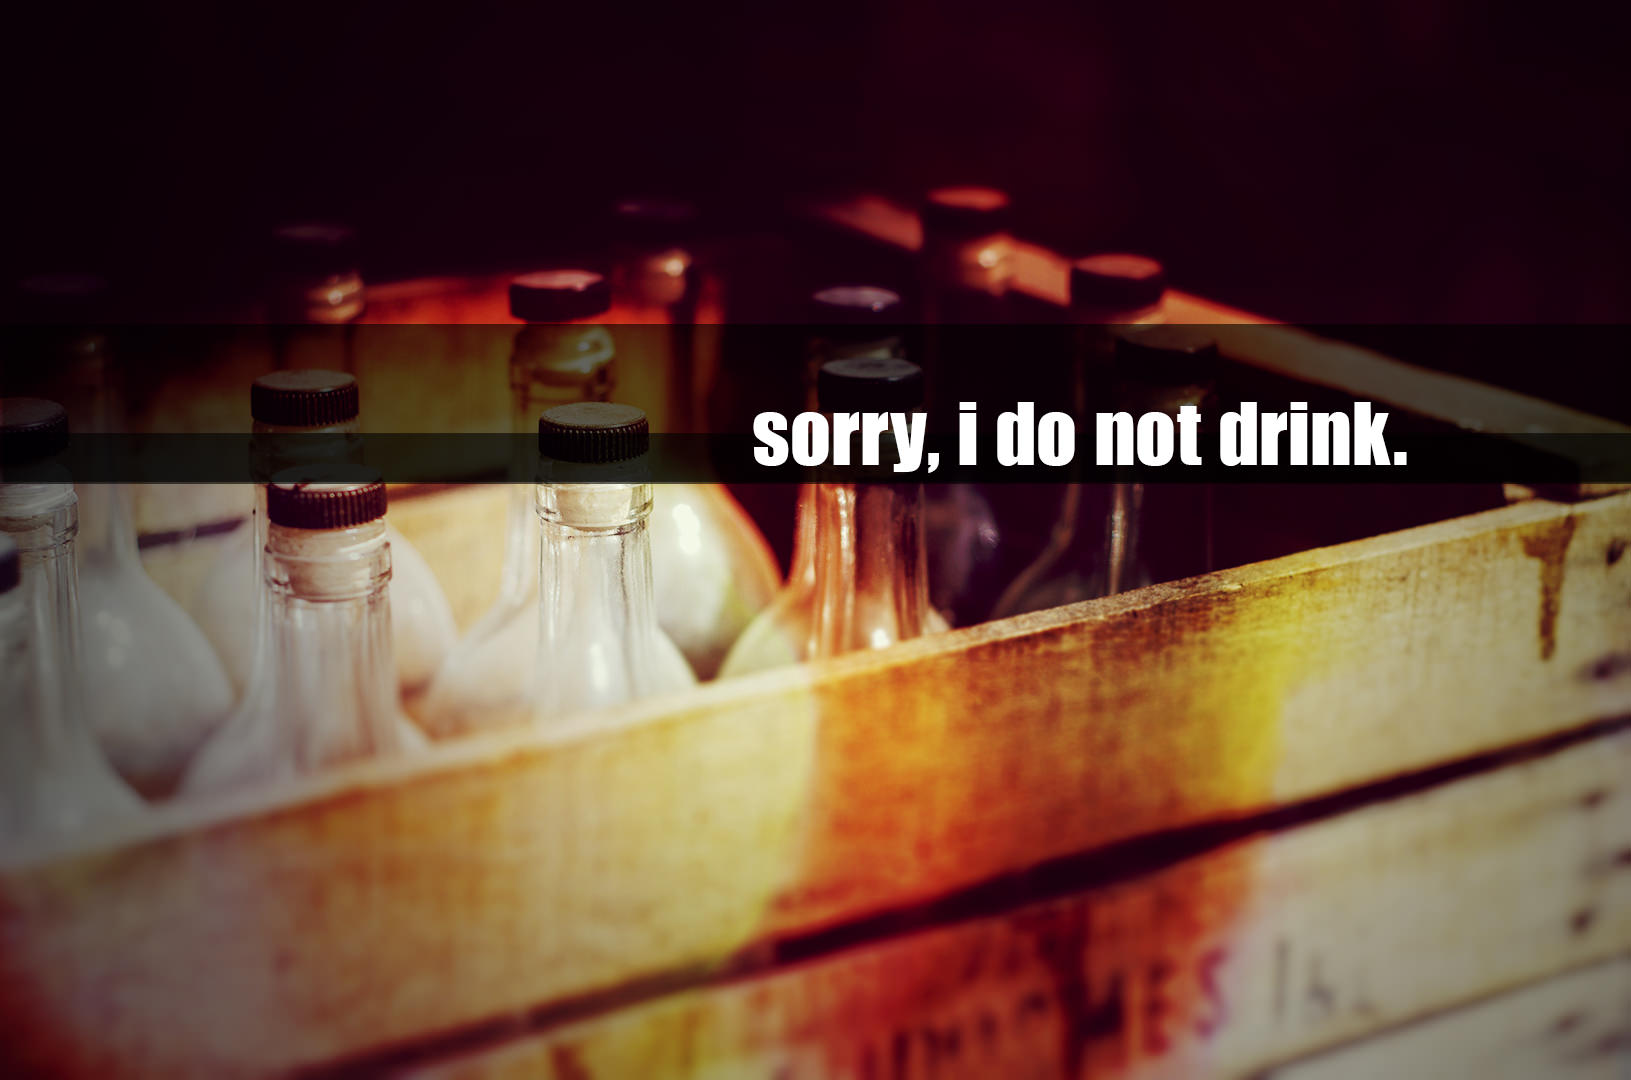 Sorry I do not drink!